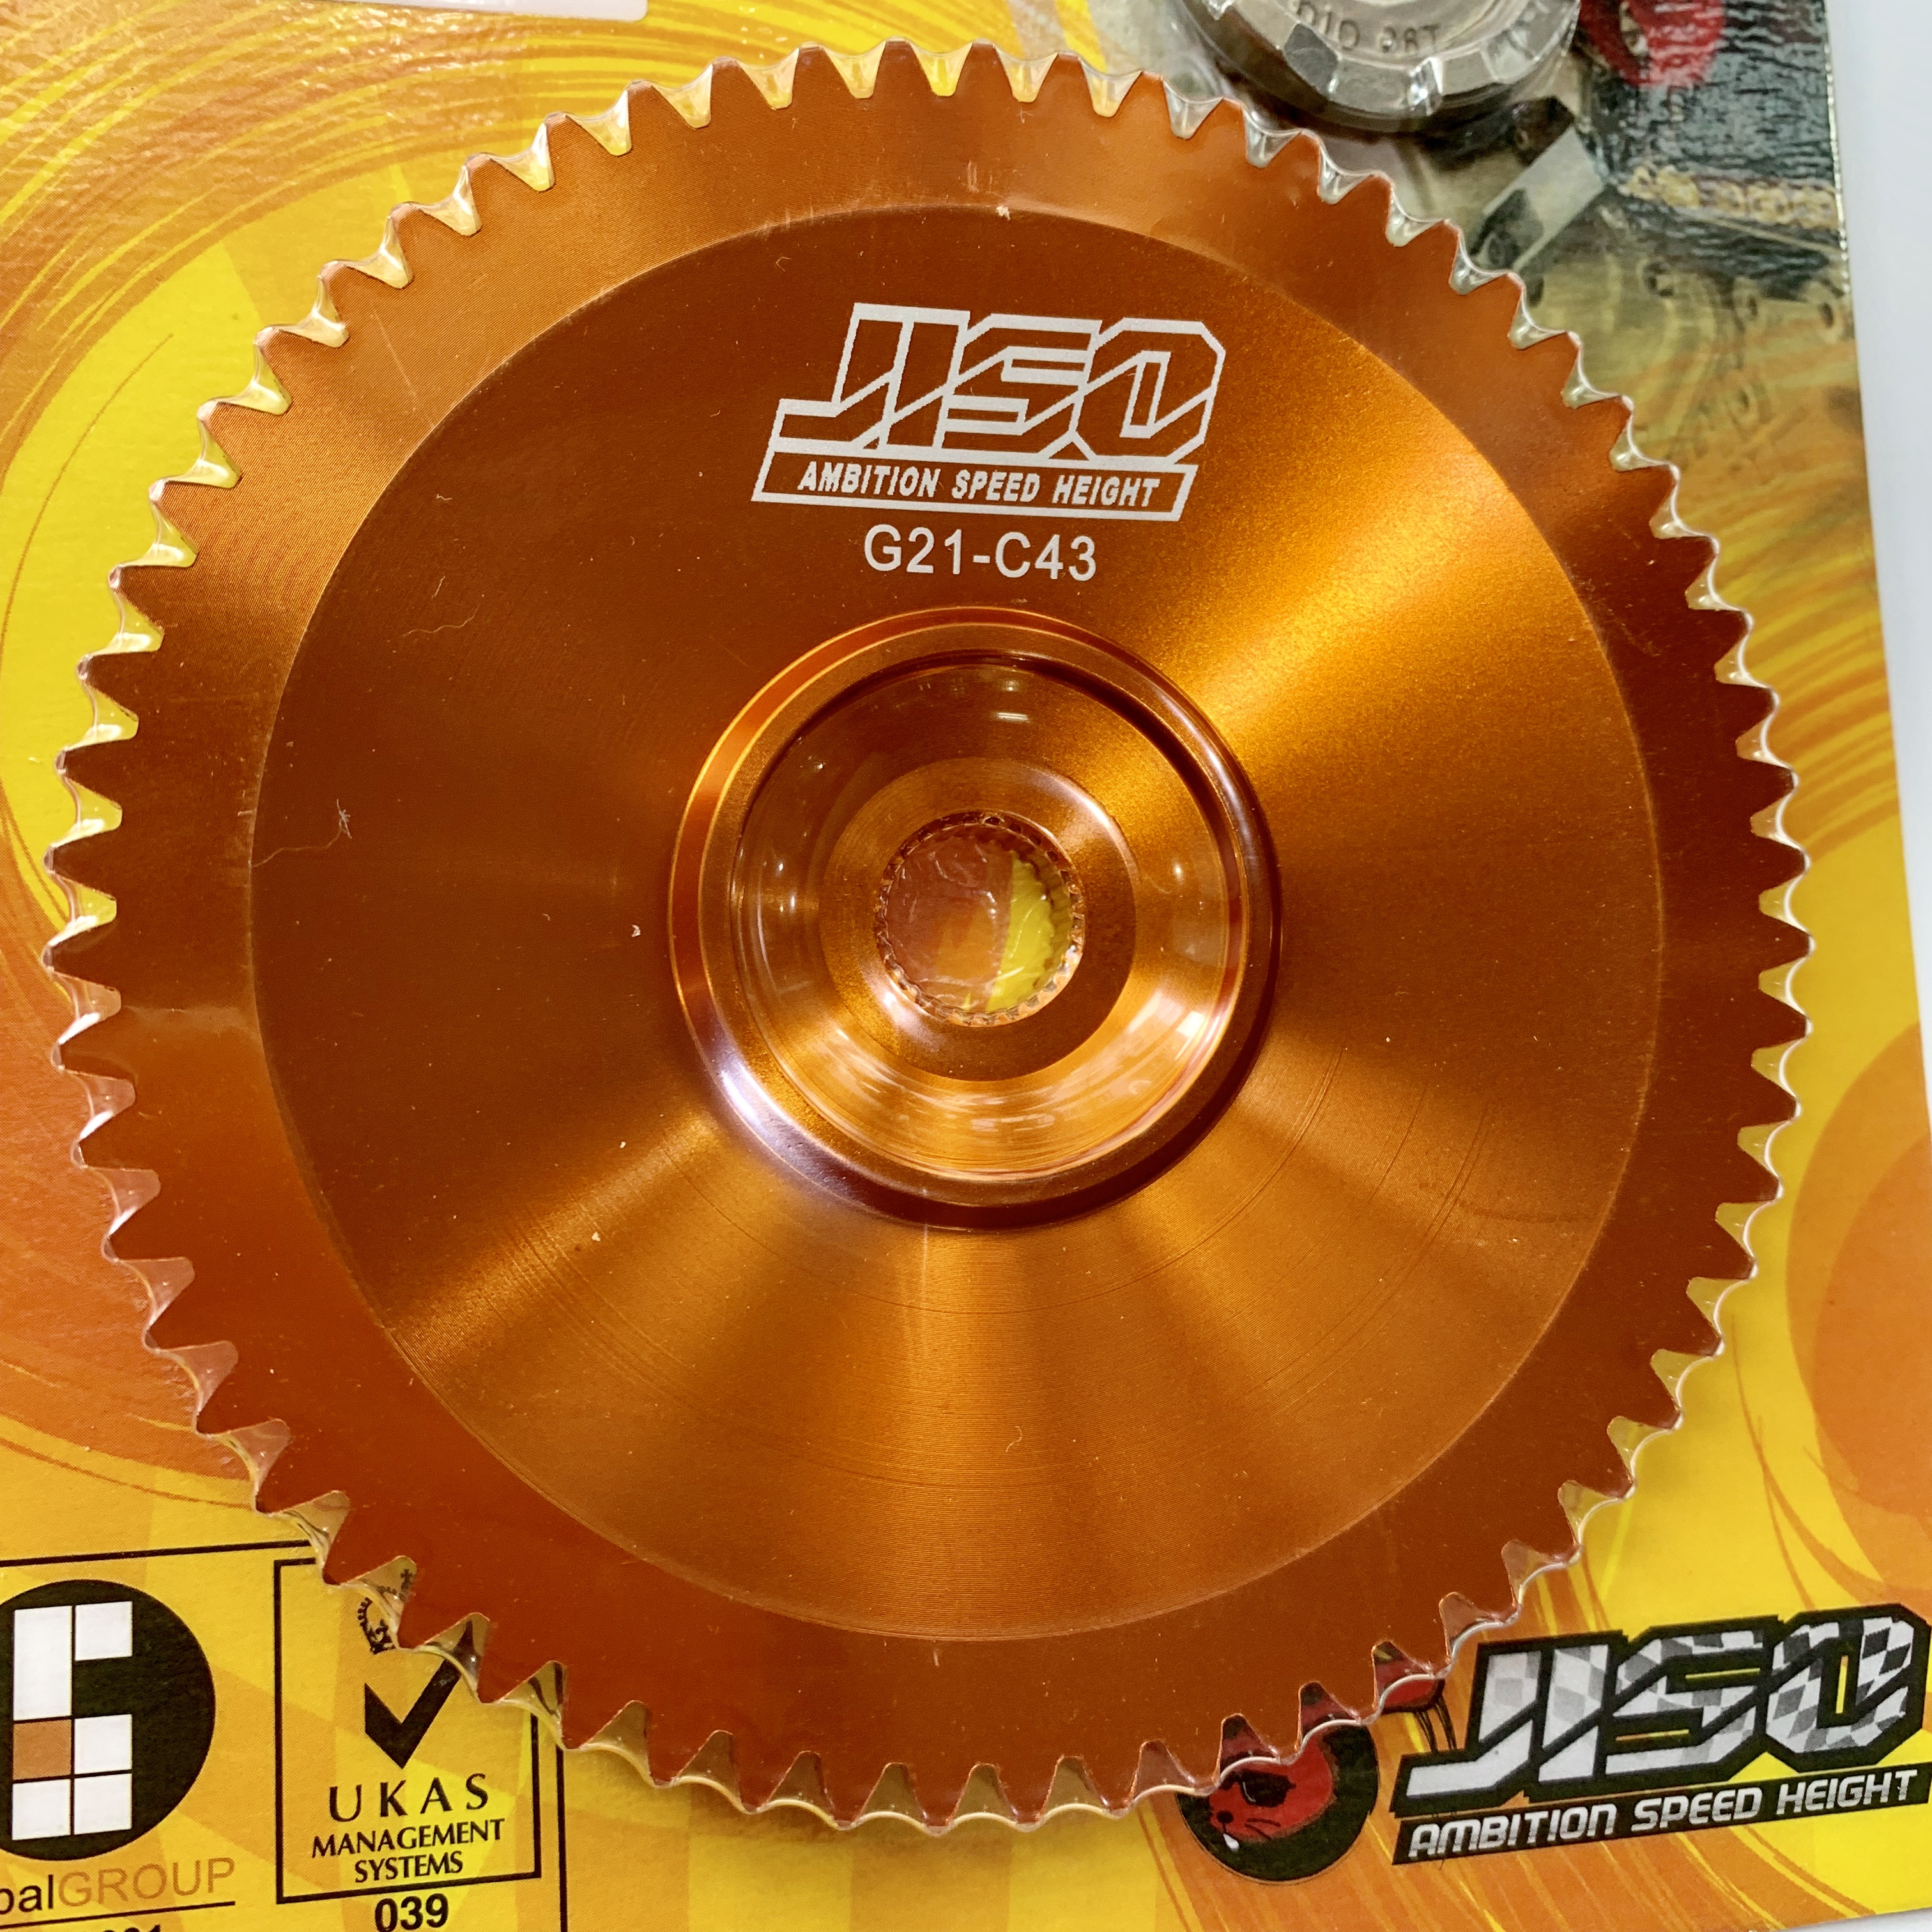 DIO50 Variator Pulley Plate JISO Teflon Racing Cap For Variator Tuning Upgrade Taiwanese Rrgs Top Quality Dio 50